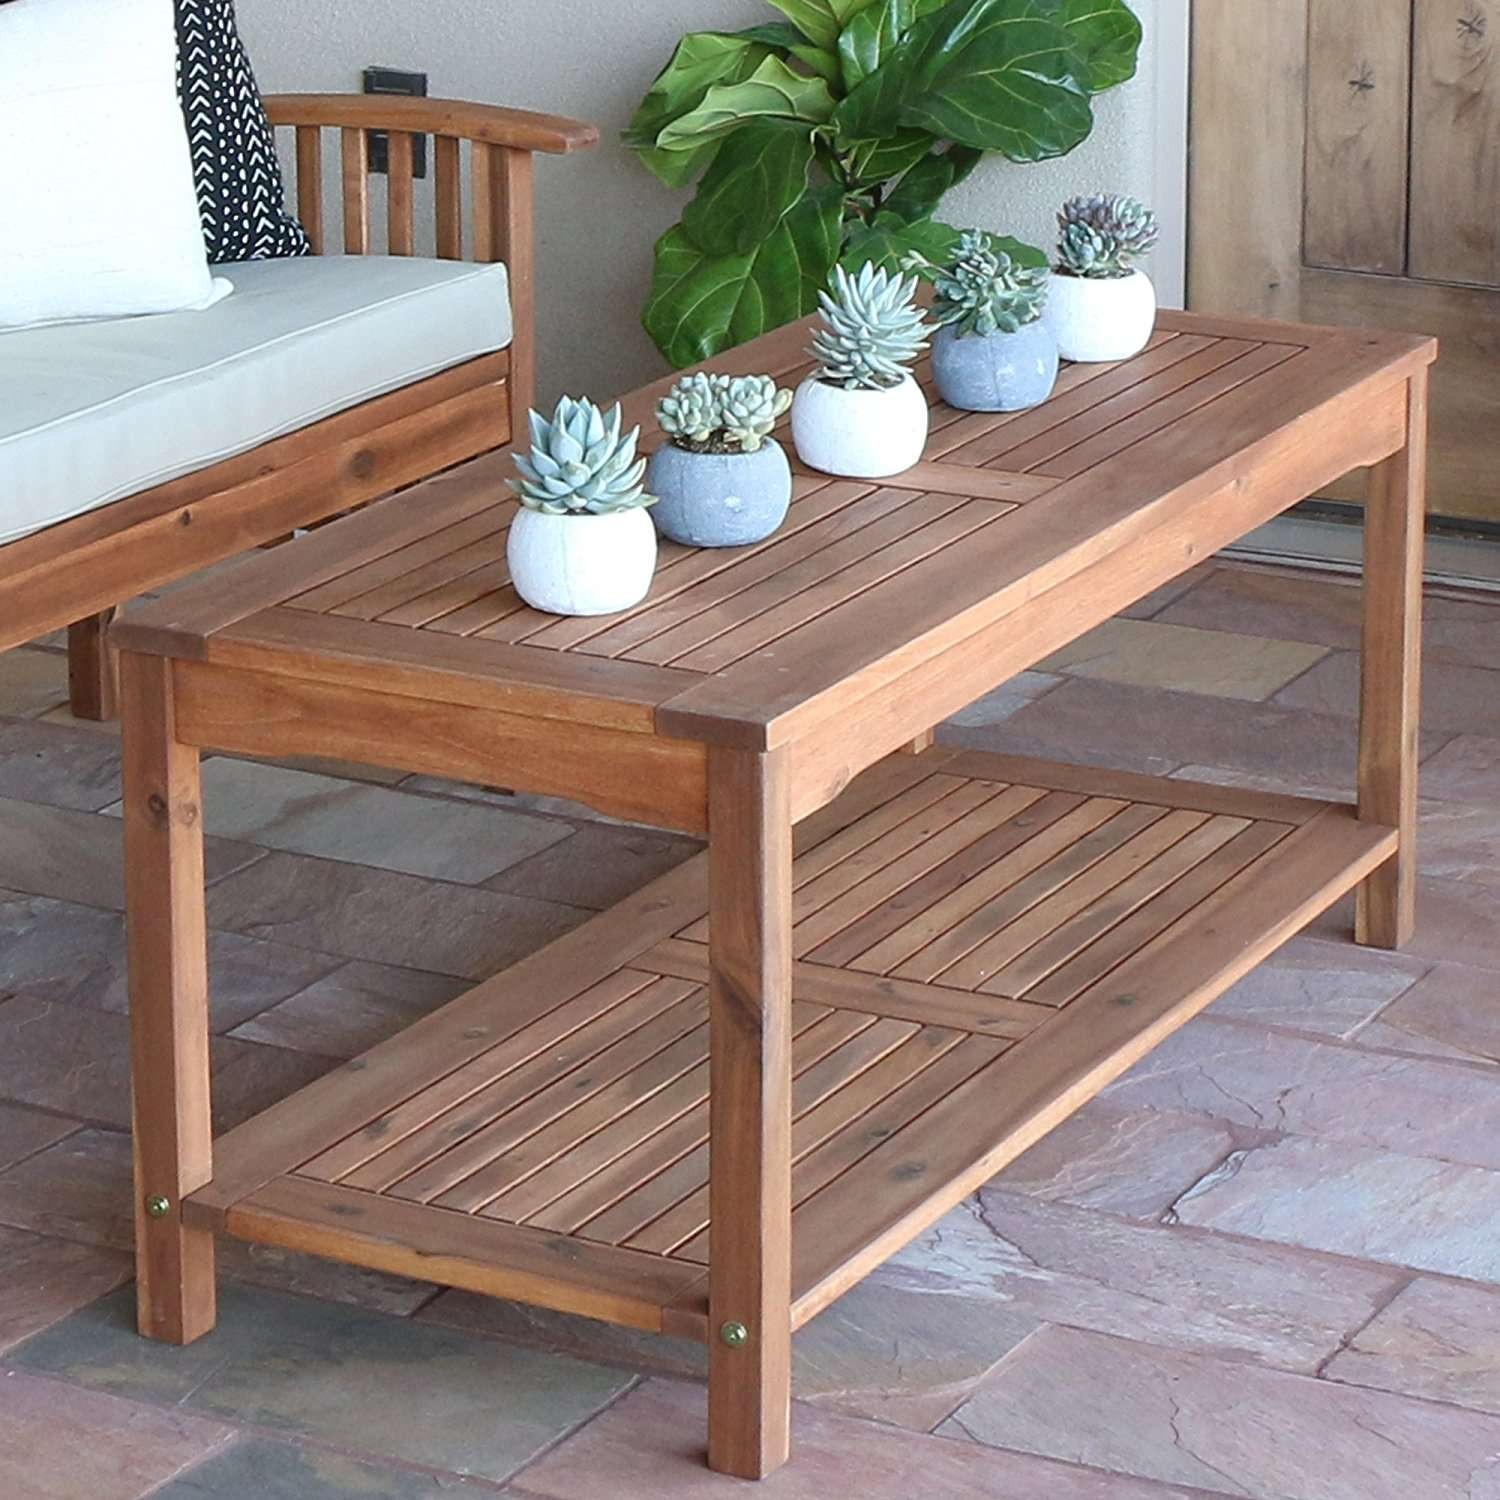 9 Crate And Barrel Concrete Coffee Table Gallery | Coffee Tables Ideas Inside Parsons Concrete Top & Elm Base 48x16 Console Tables (View 5 of 30)